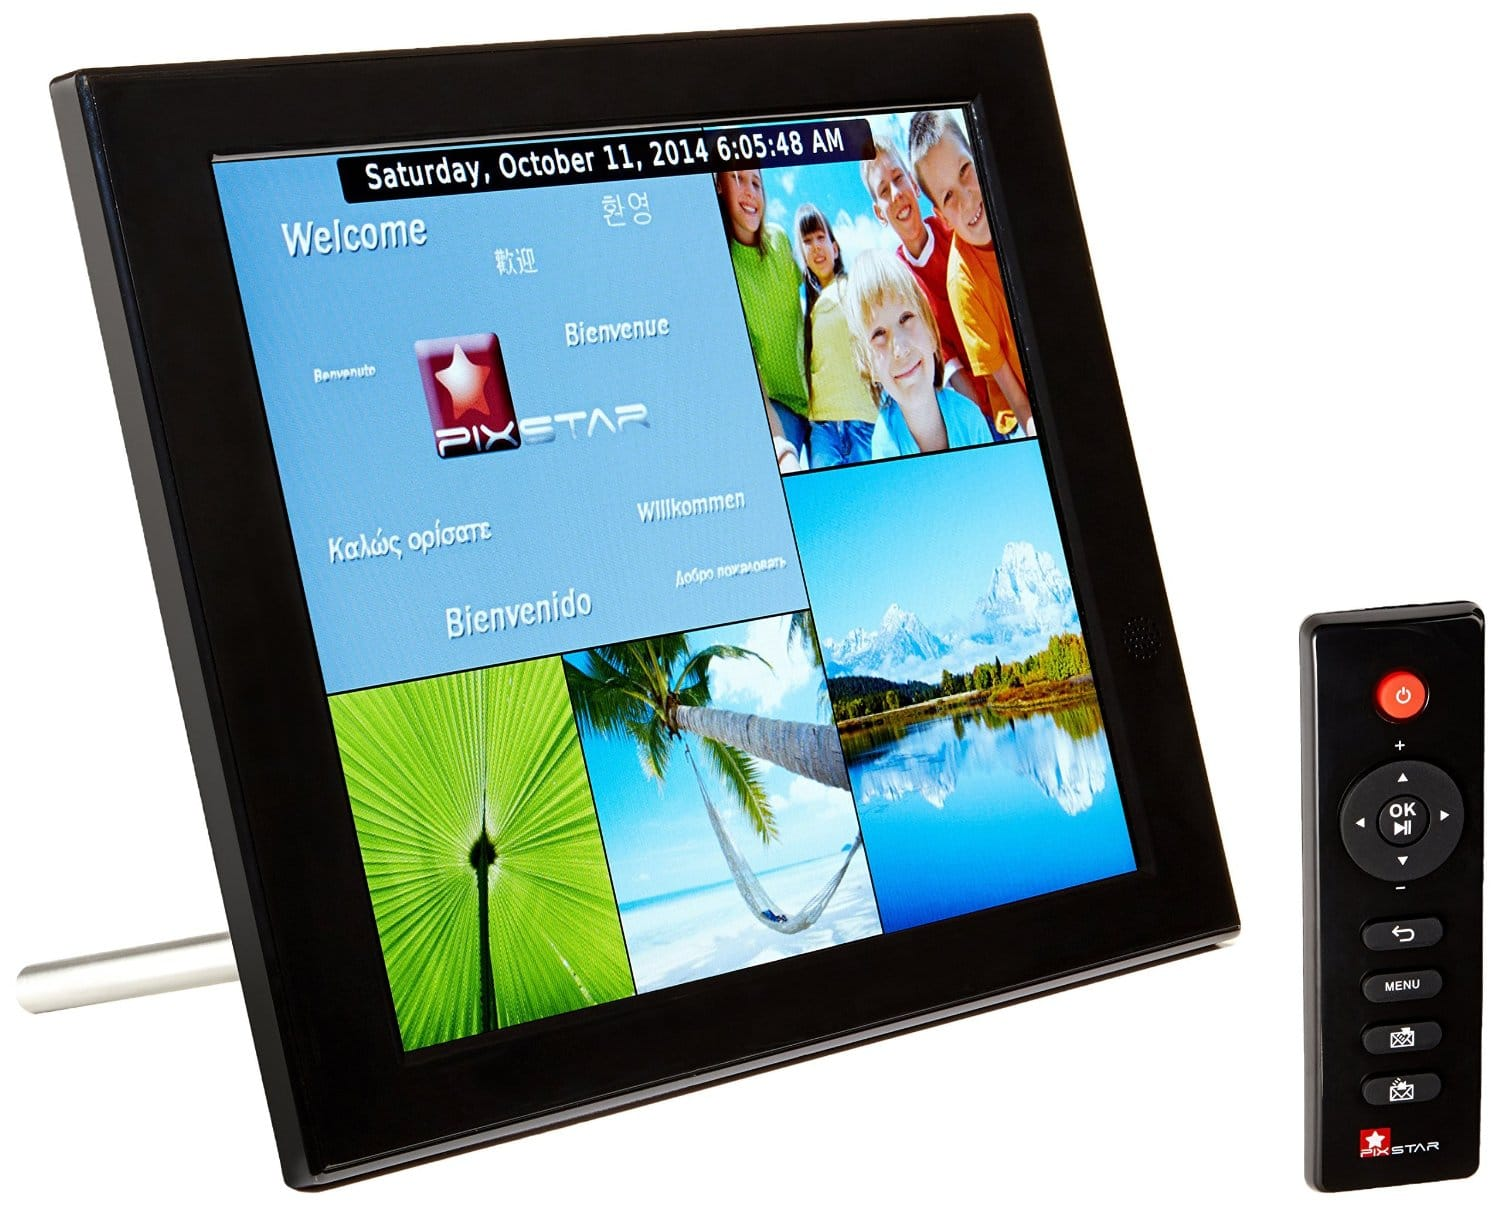 pix star 104 inch wi fi cloud digital photo frame fotoconnect xd with email online providers iphone android app dlna and more black top portal